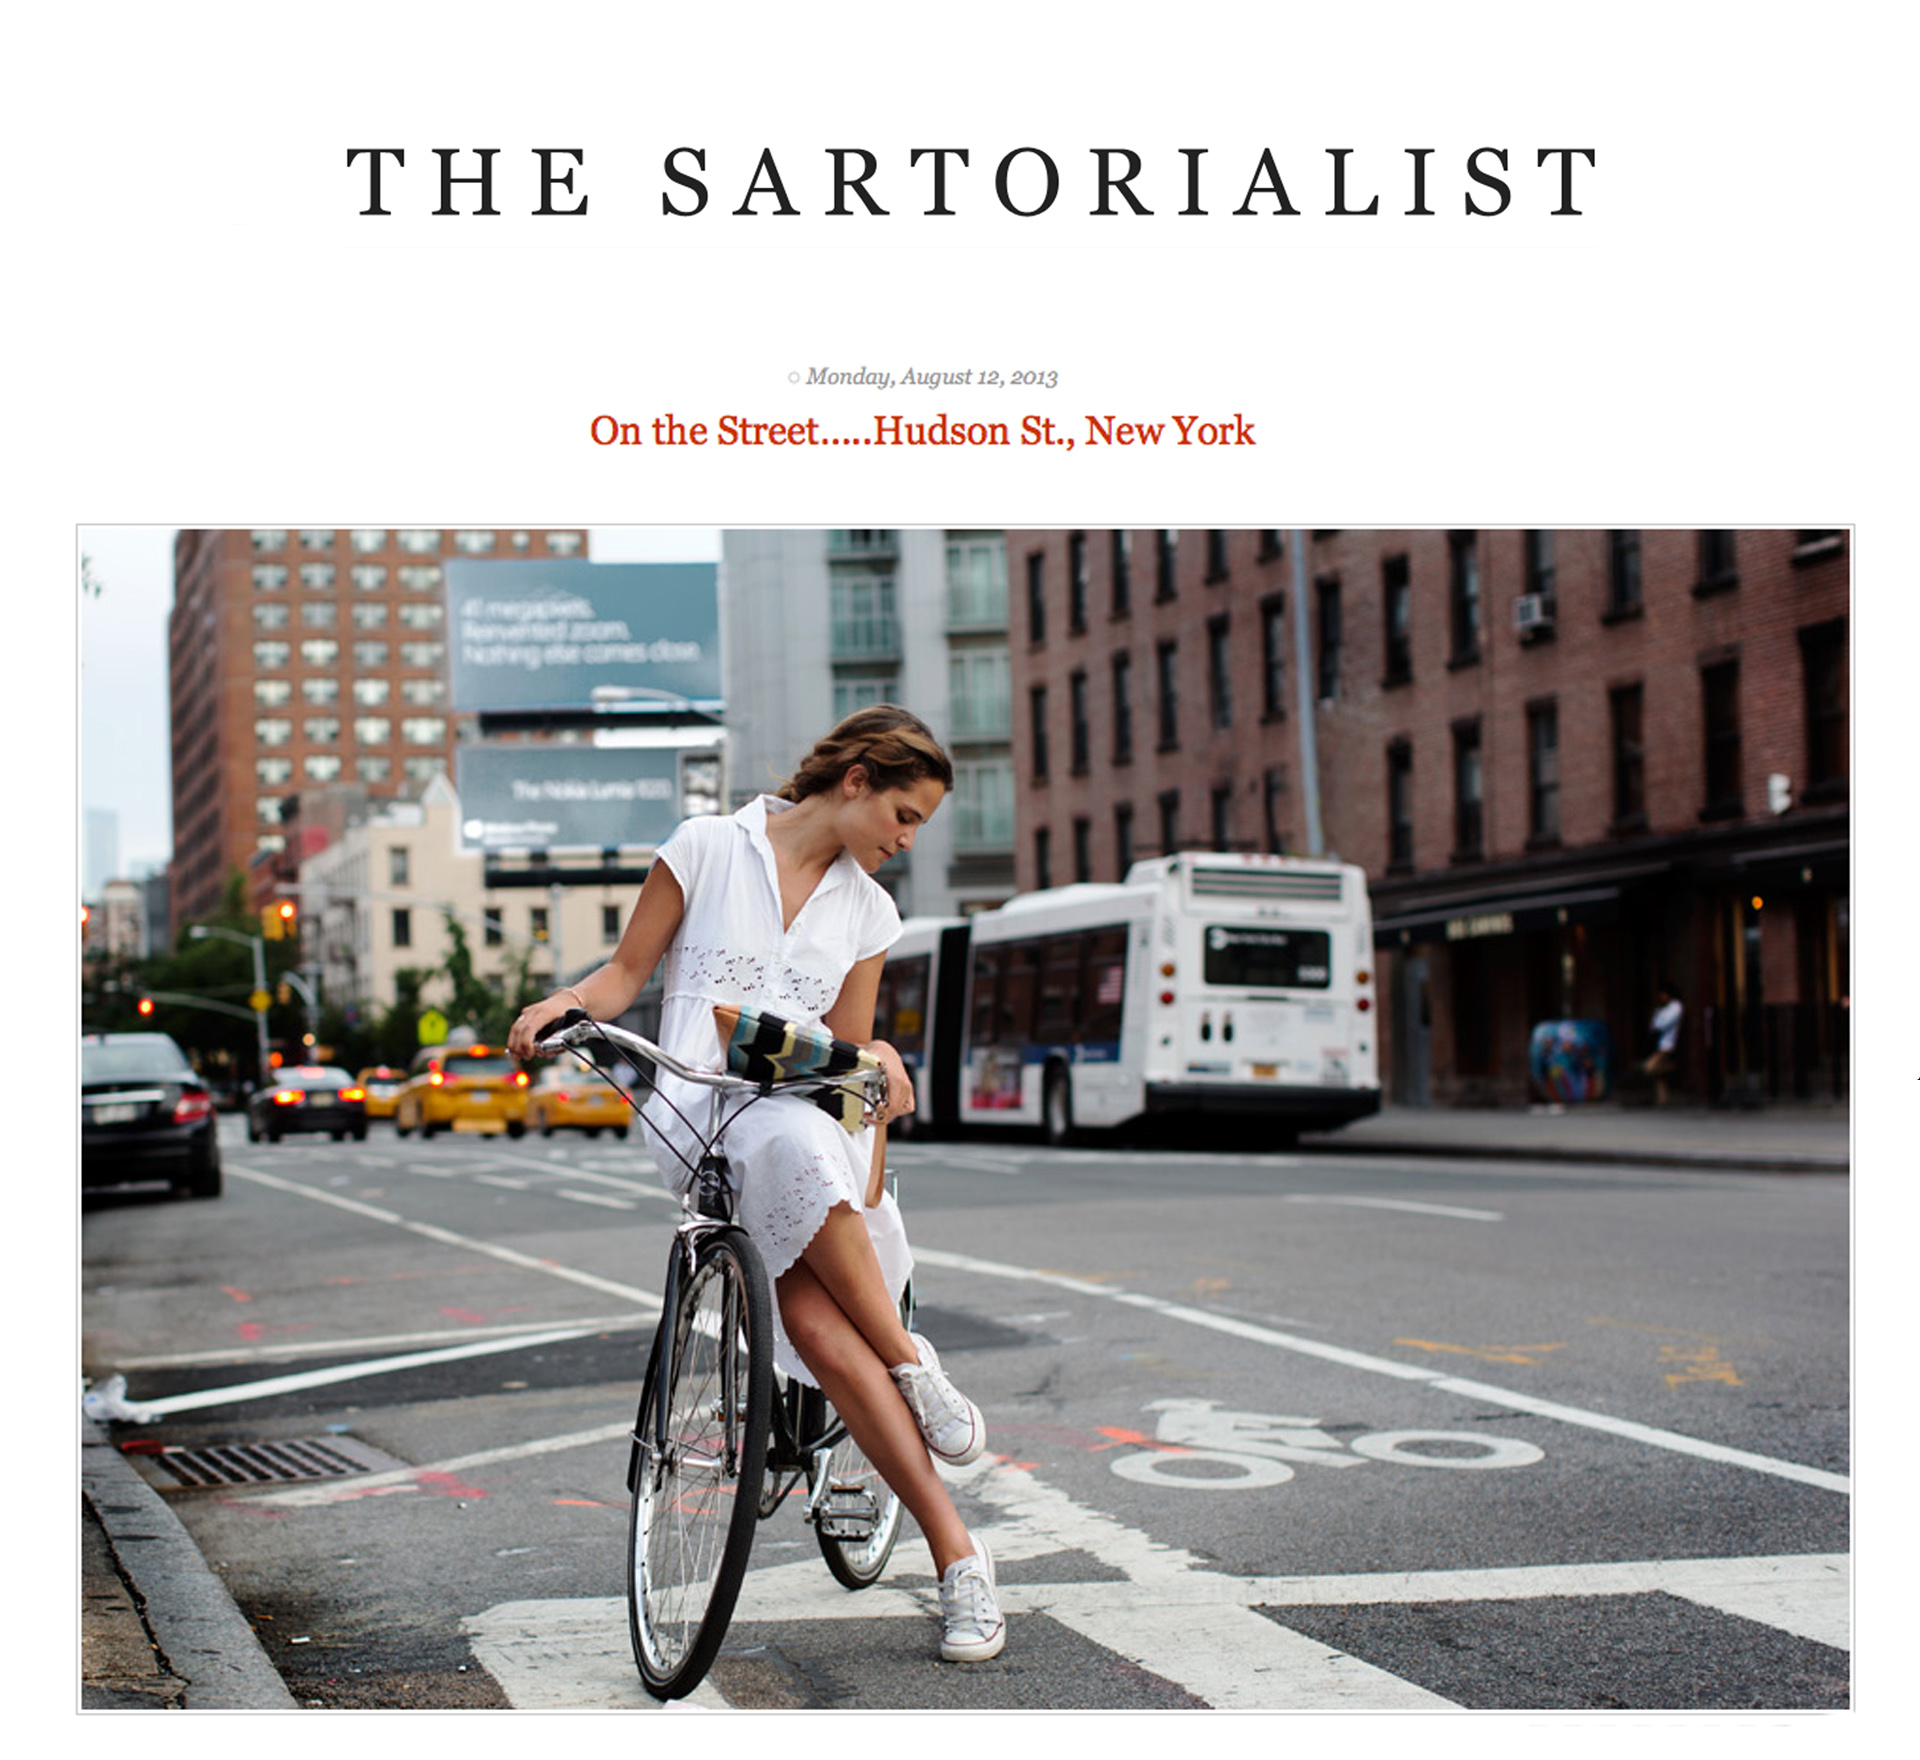 This beautiful image by The Sartorialist is on the top of the Linus press page.